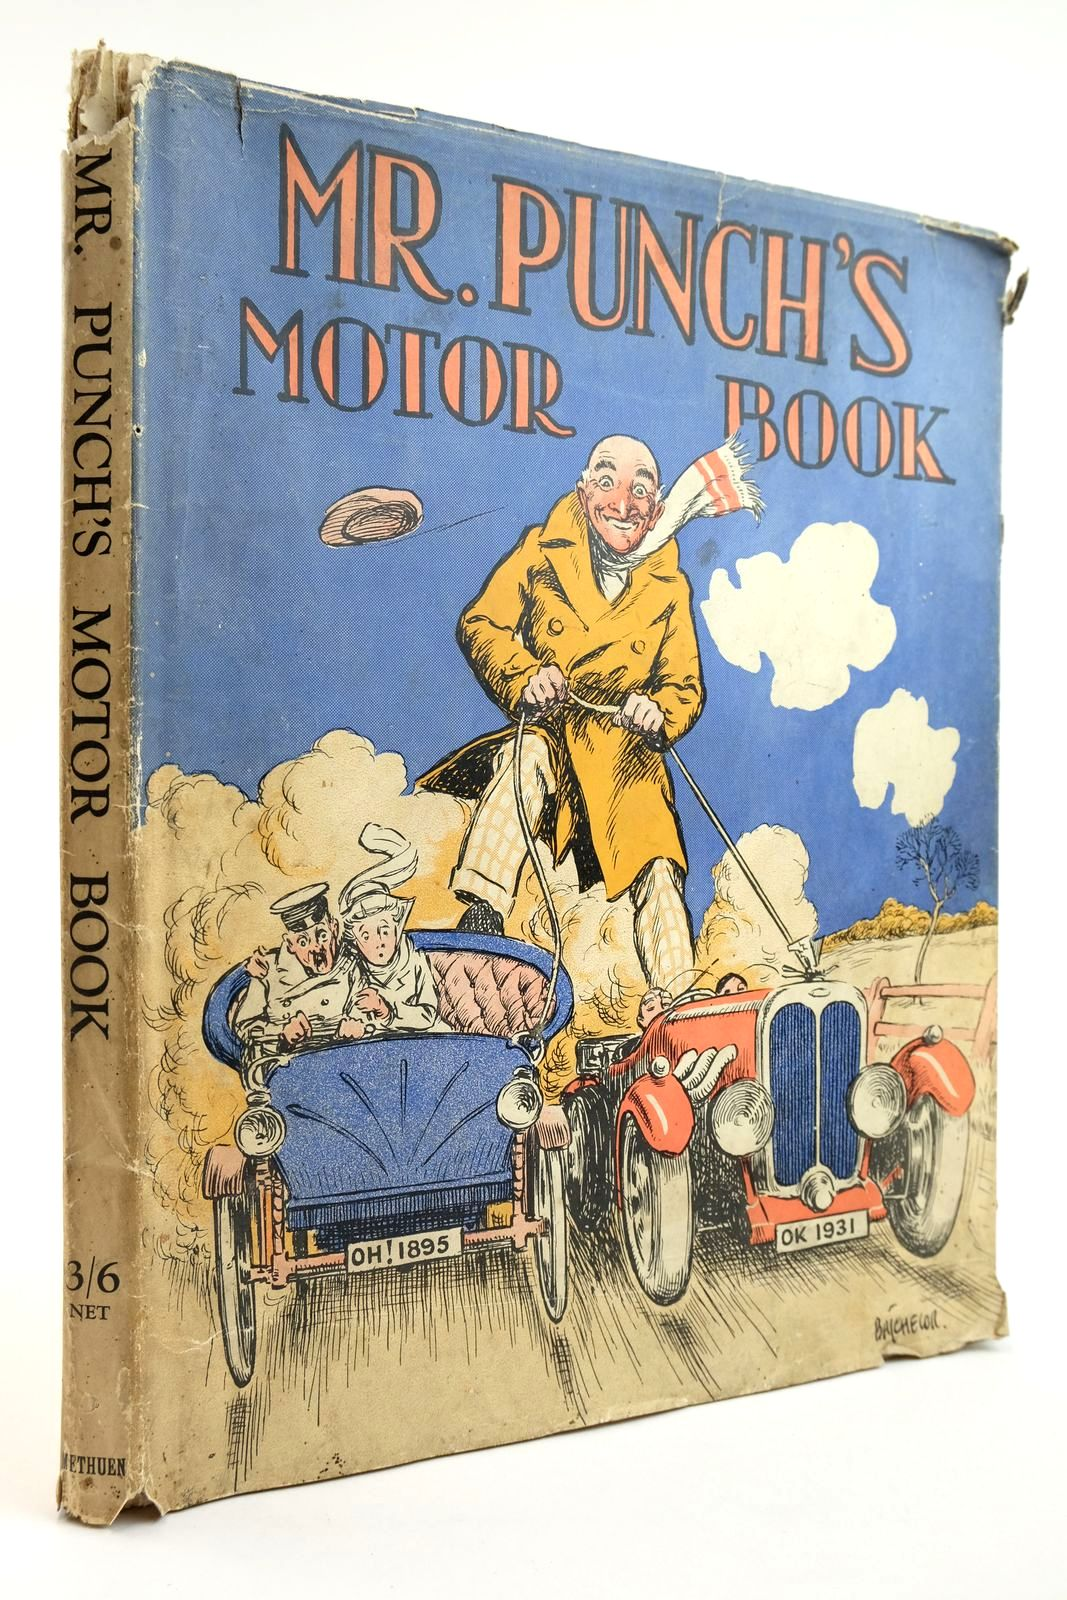 Photo of MR. PUNCH'S MOTOR BOOK published by Methuen & Co. Ltd. (STOCK CODE: 2133455)  for sale by Stella & Rose's Books